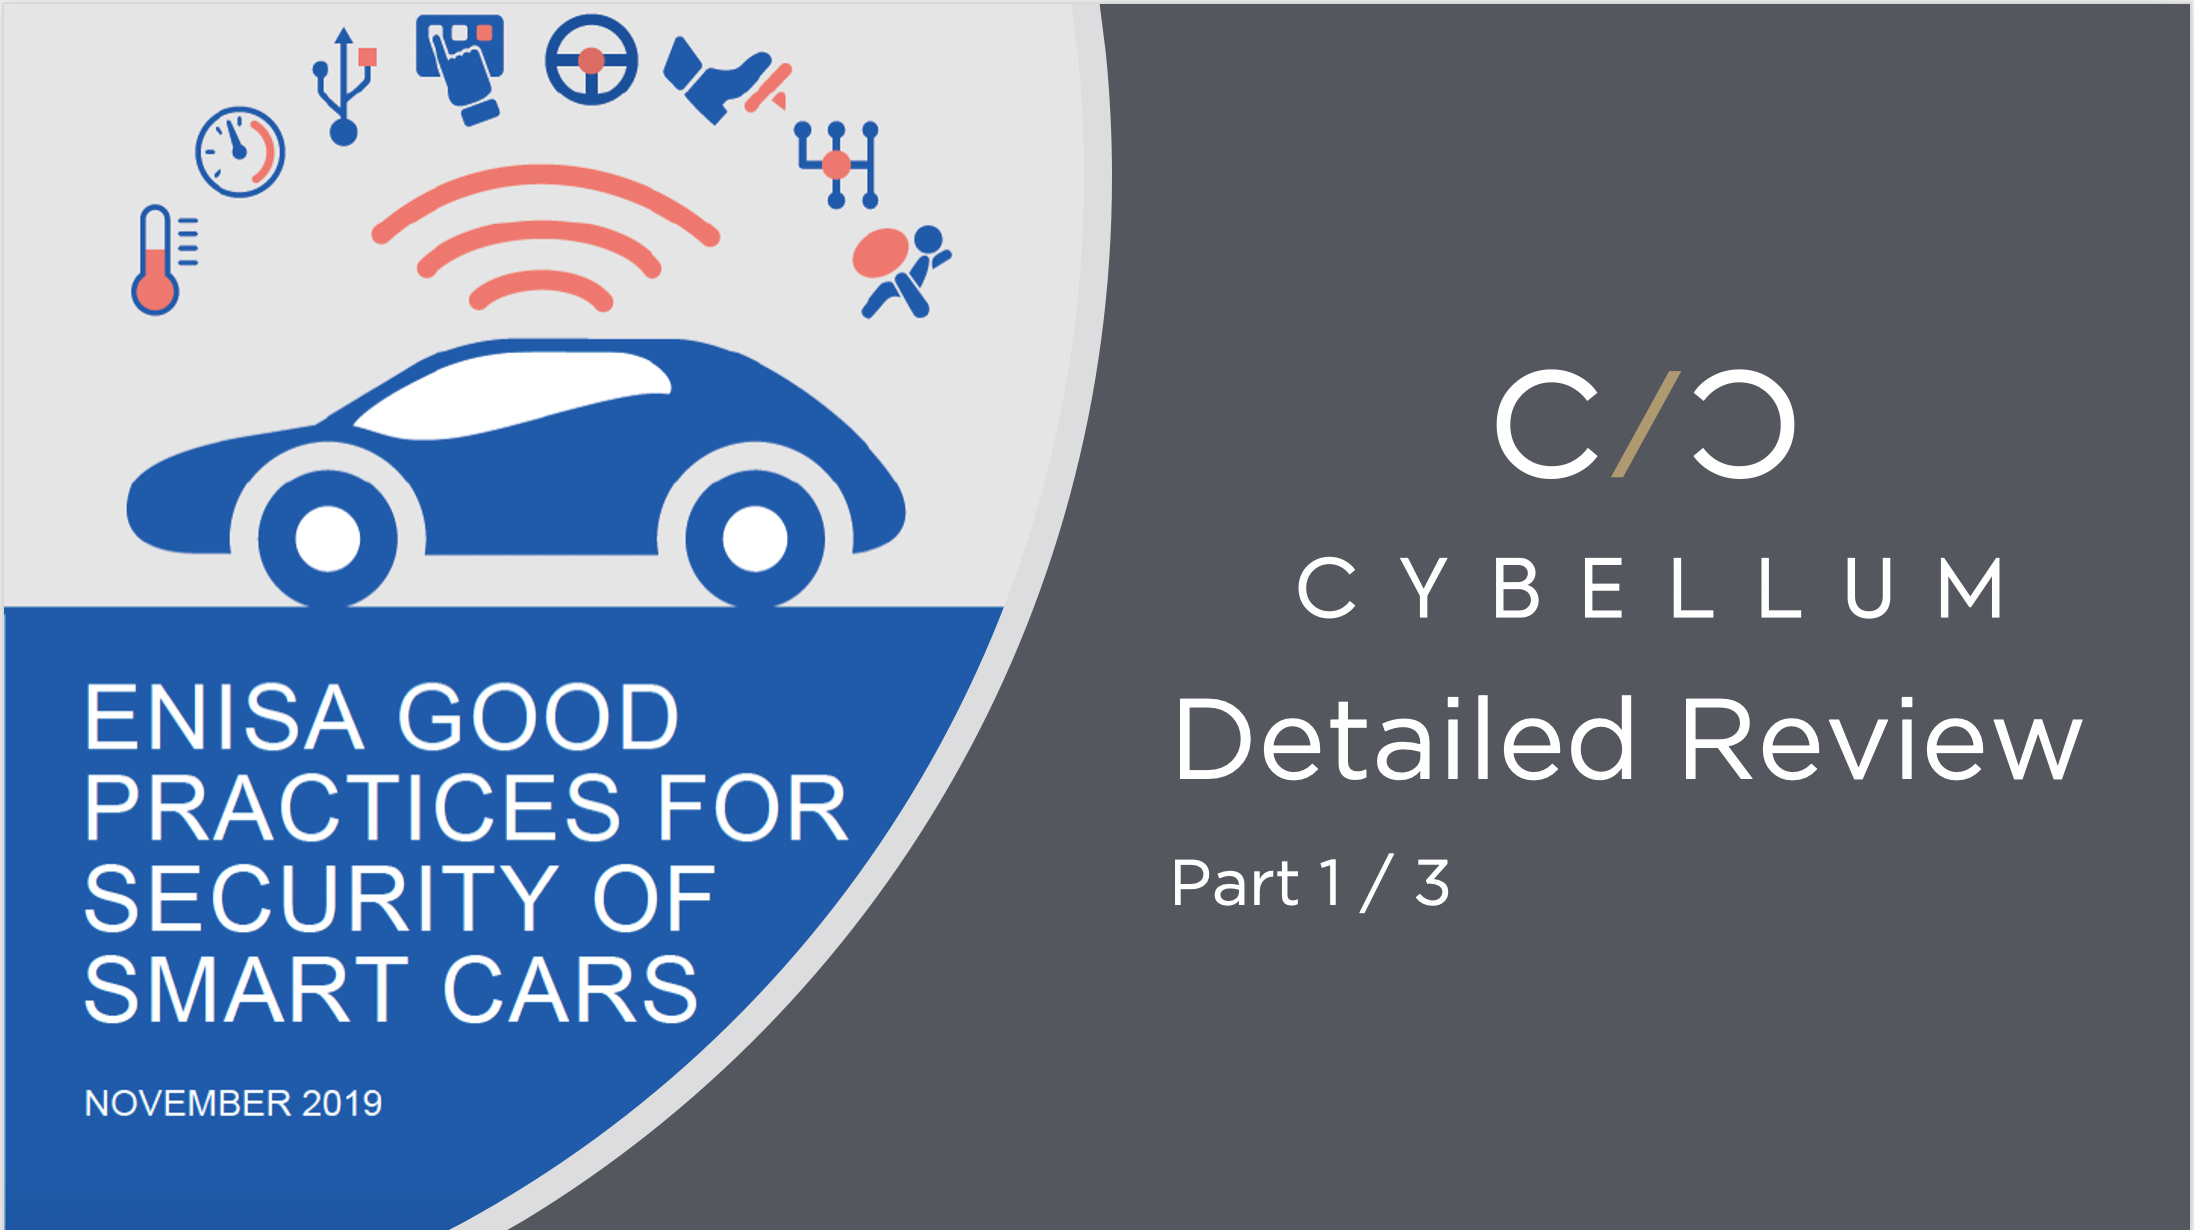 Enisa U0026 39 S Latest Report On Automotive Cybersecurity